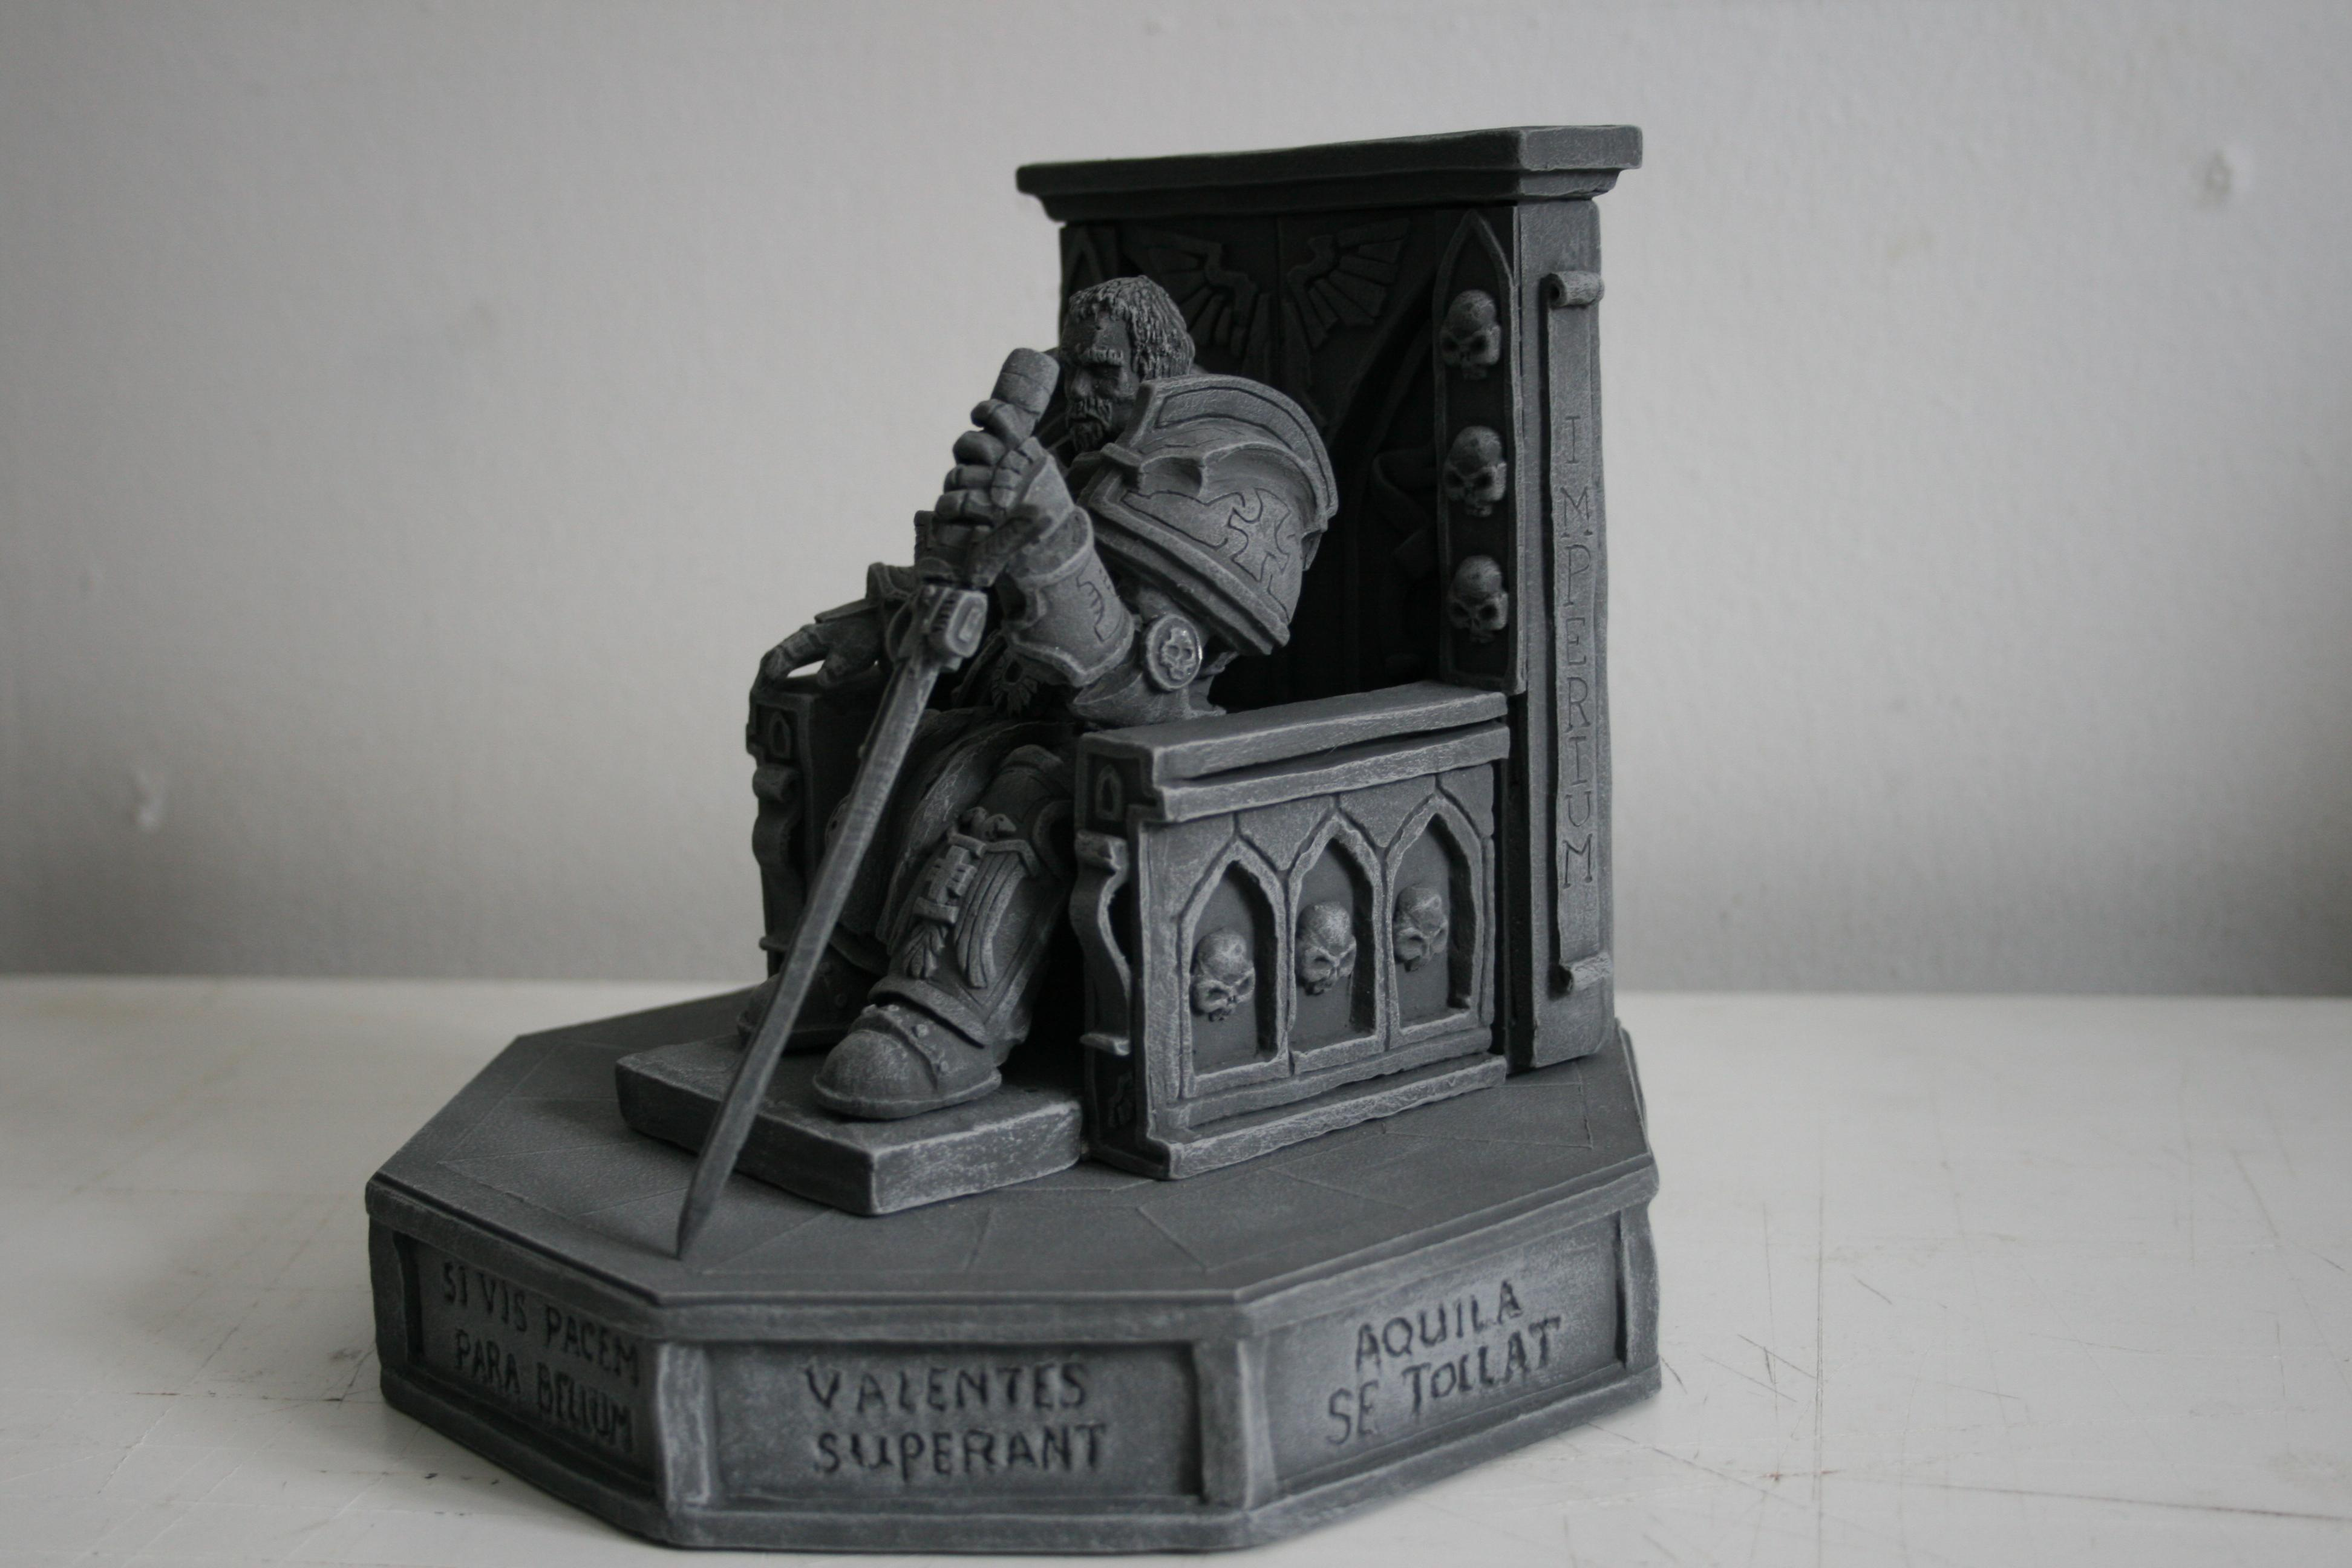 40k Inquisitor, Chaos, Chaos Lord, Chaos Space Marines, Imperial, Imperium, Inquisition, Inquisitor, Inquisitor Lord, Lord Inquisitor, Monument, Scatch Build, Scratch Build, Sculpting, Sculpture, Space Marines, Statue, Statues, Terrain, Throne, Warhammer 40,000, Warhammer Fantasy